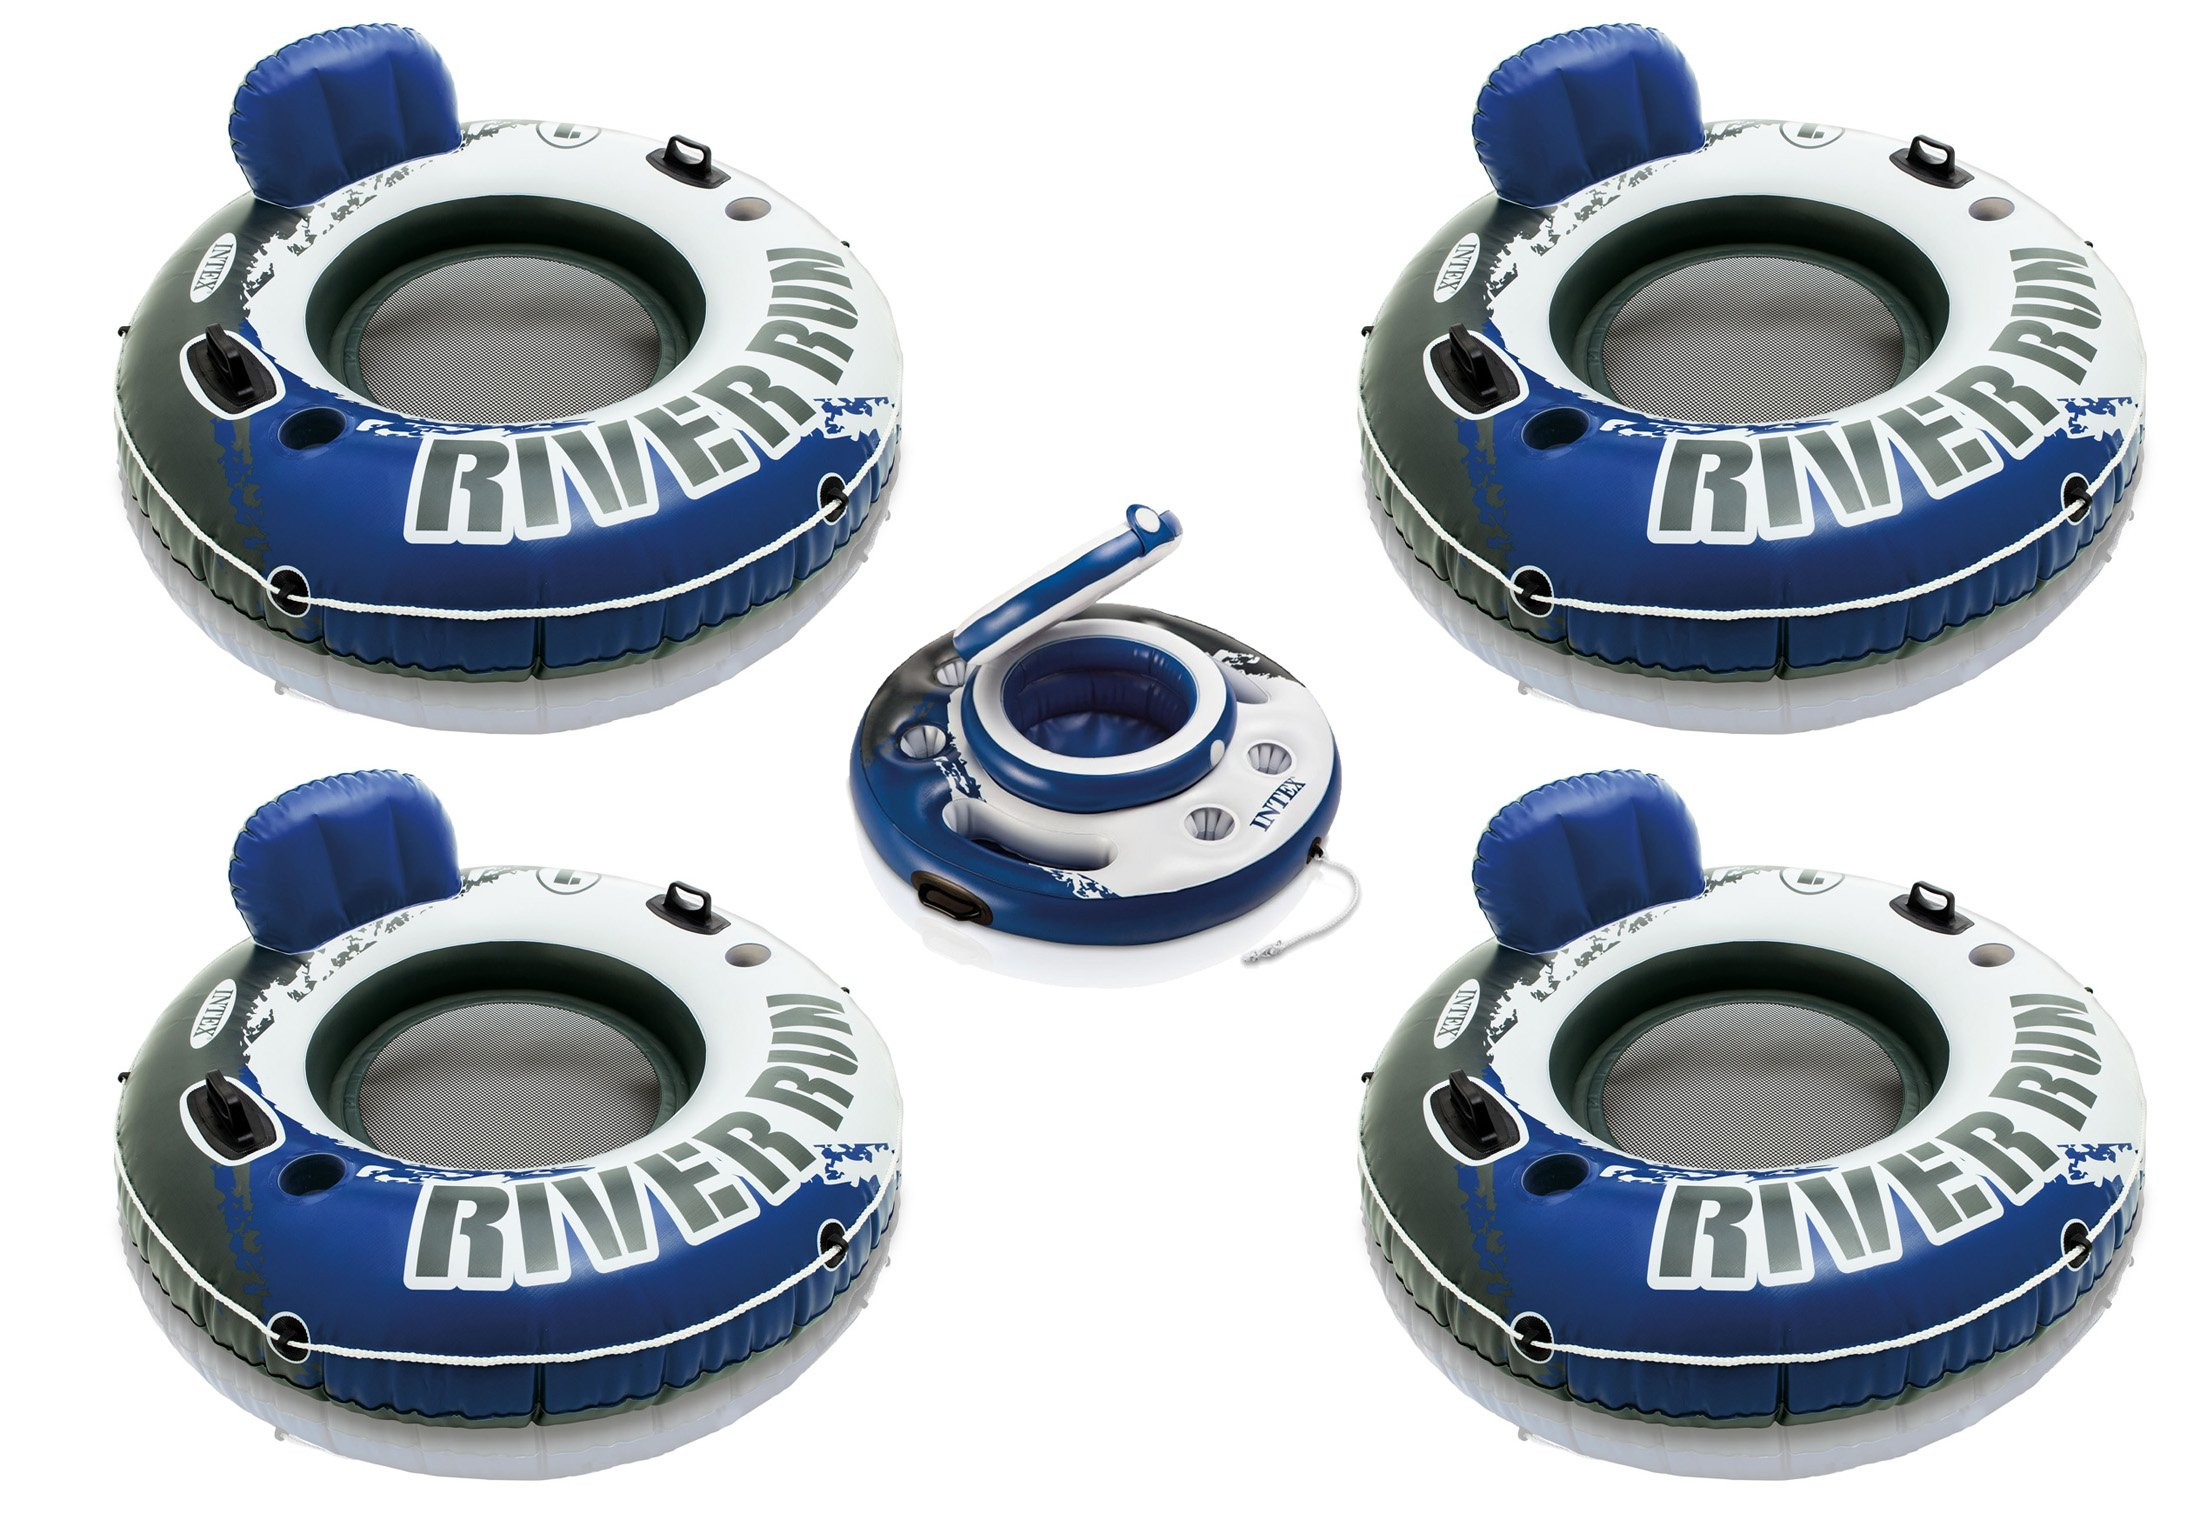 Intex River Run I Inflatable Floating Tube Raft (4-Pack) with Mega Chill Cooler